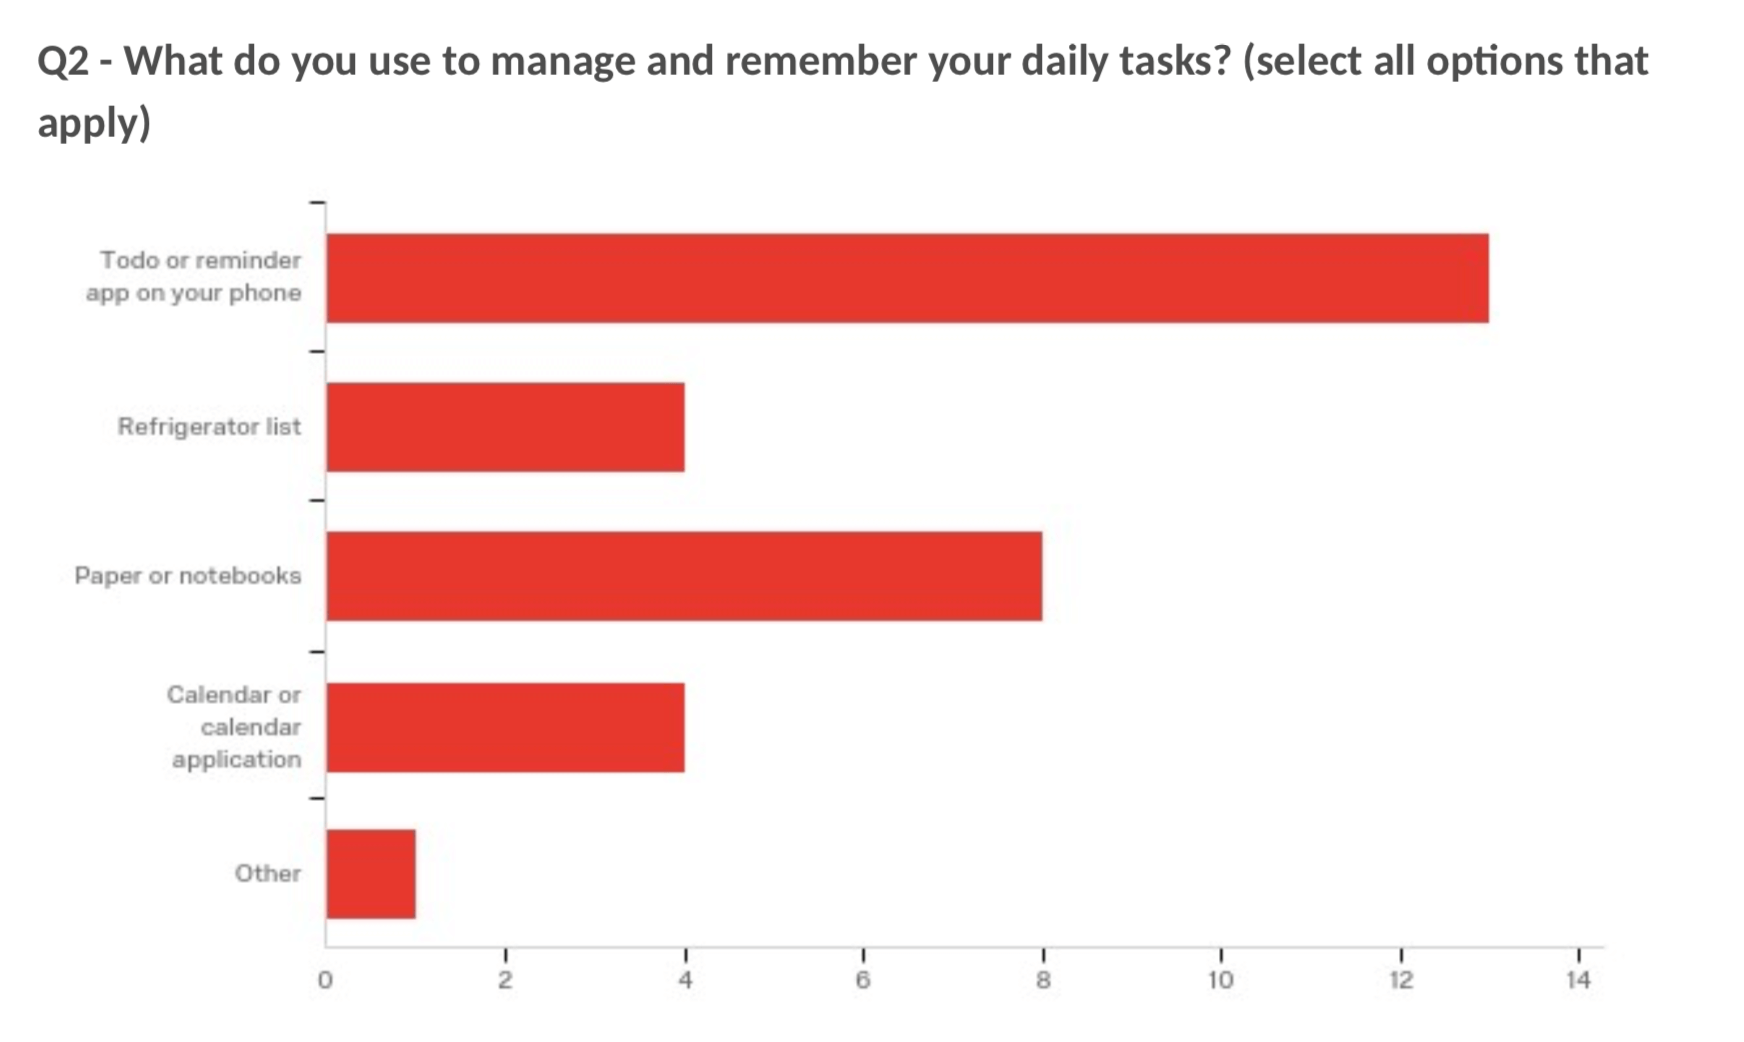 44% respondents use to-do apps to remember tasks